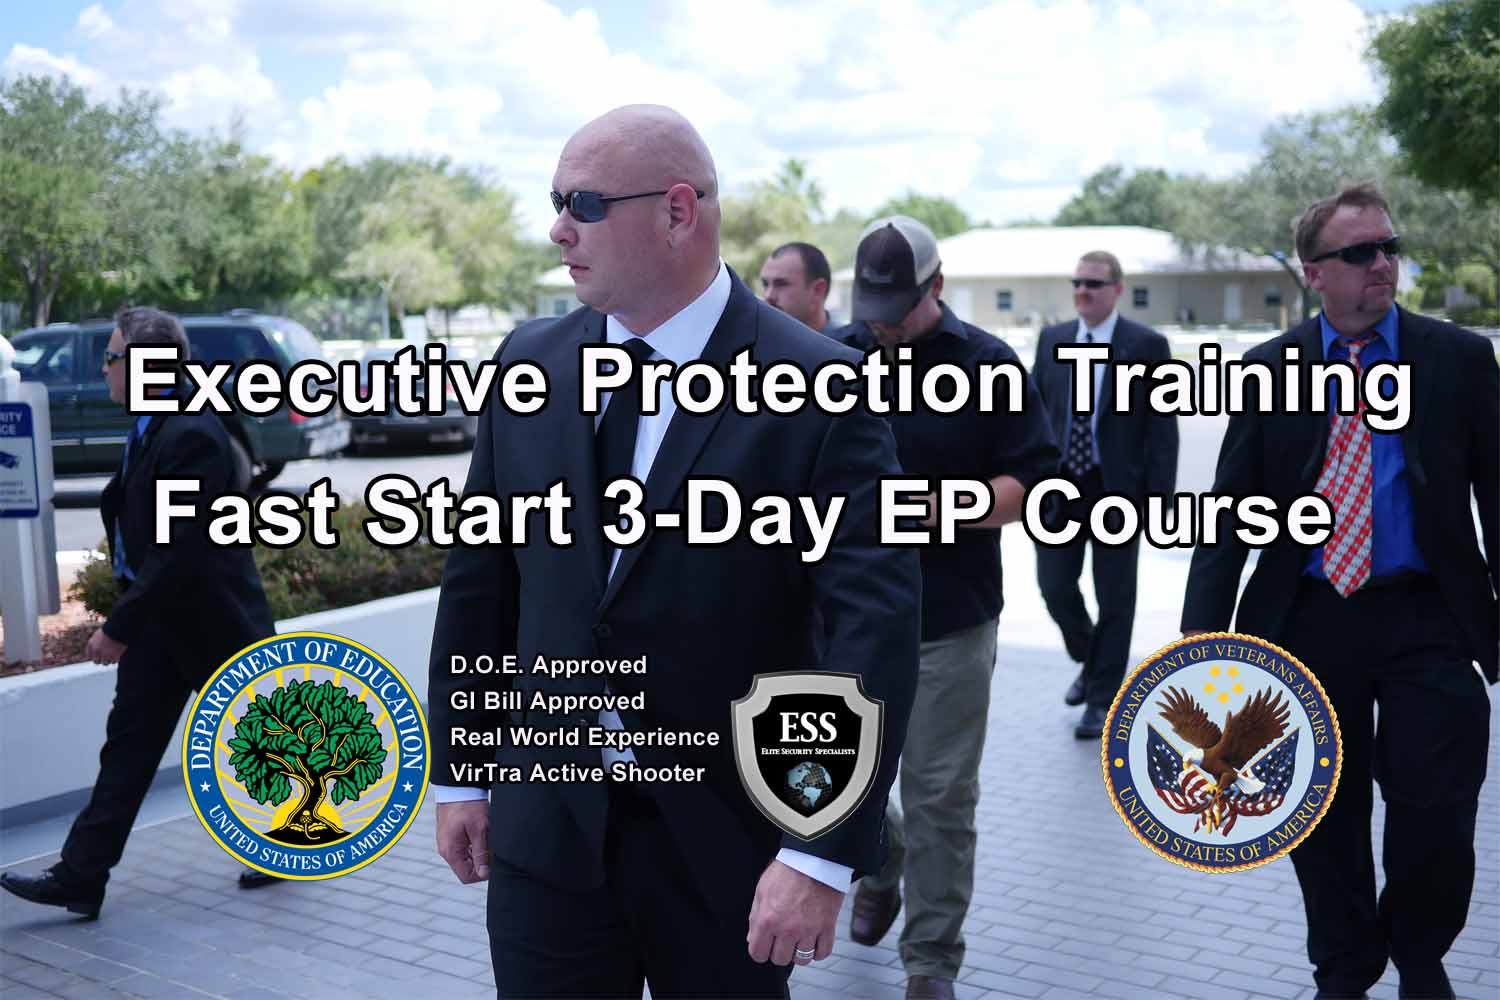 GI Bill Approved Bodyguard Training - Alabama Fast Start 3-Day Training